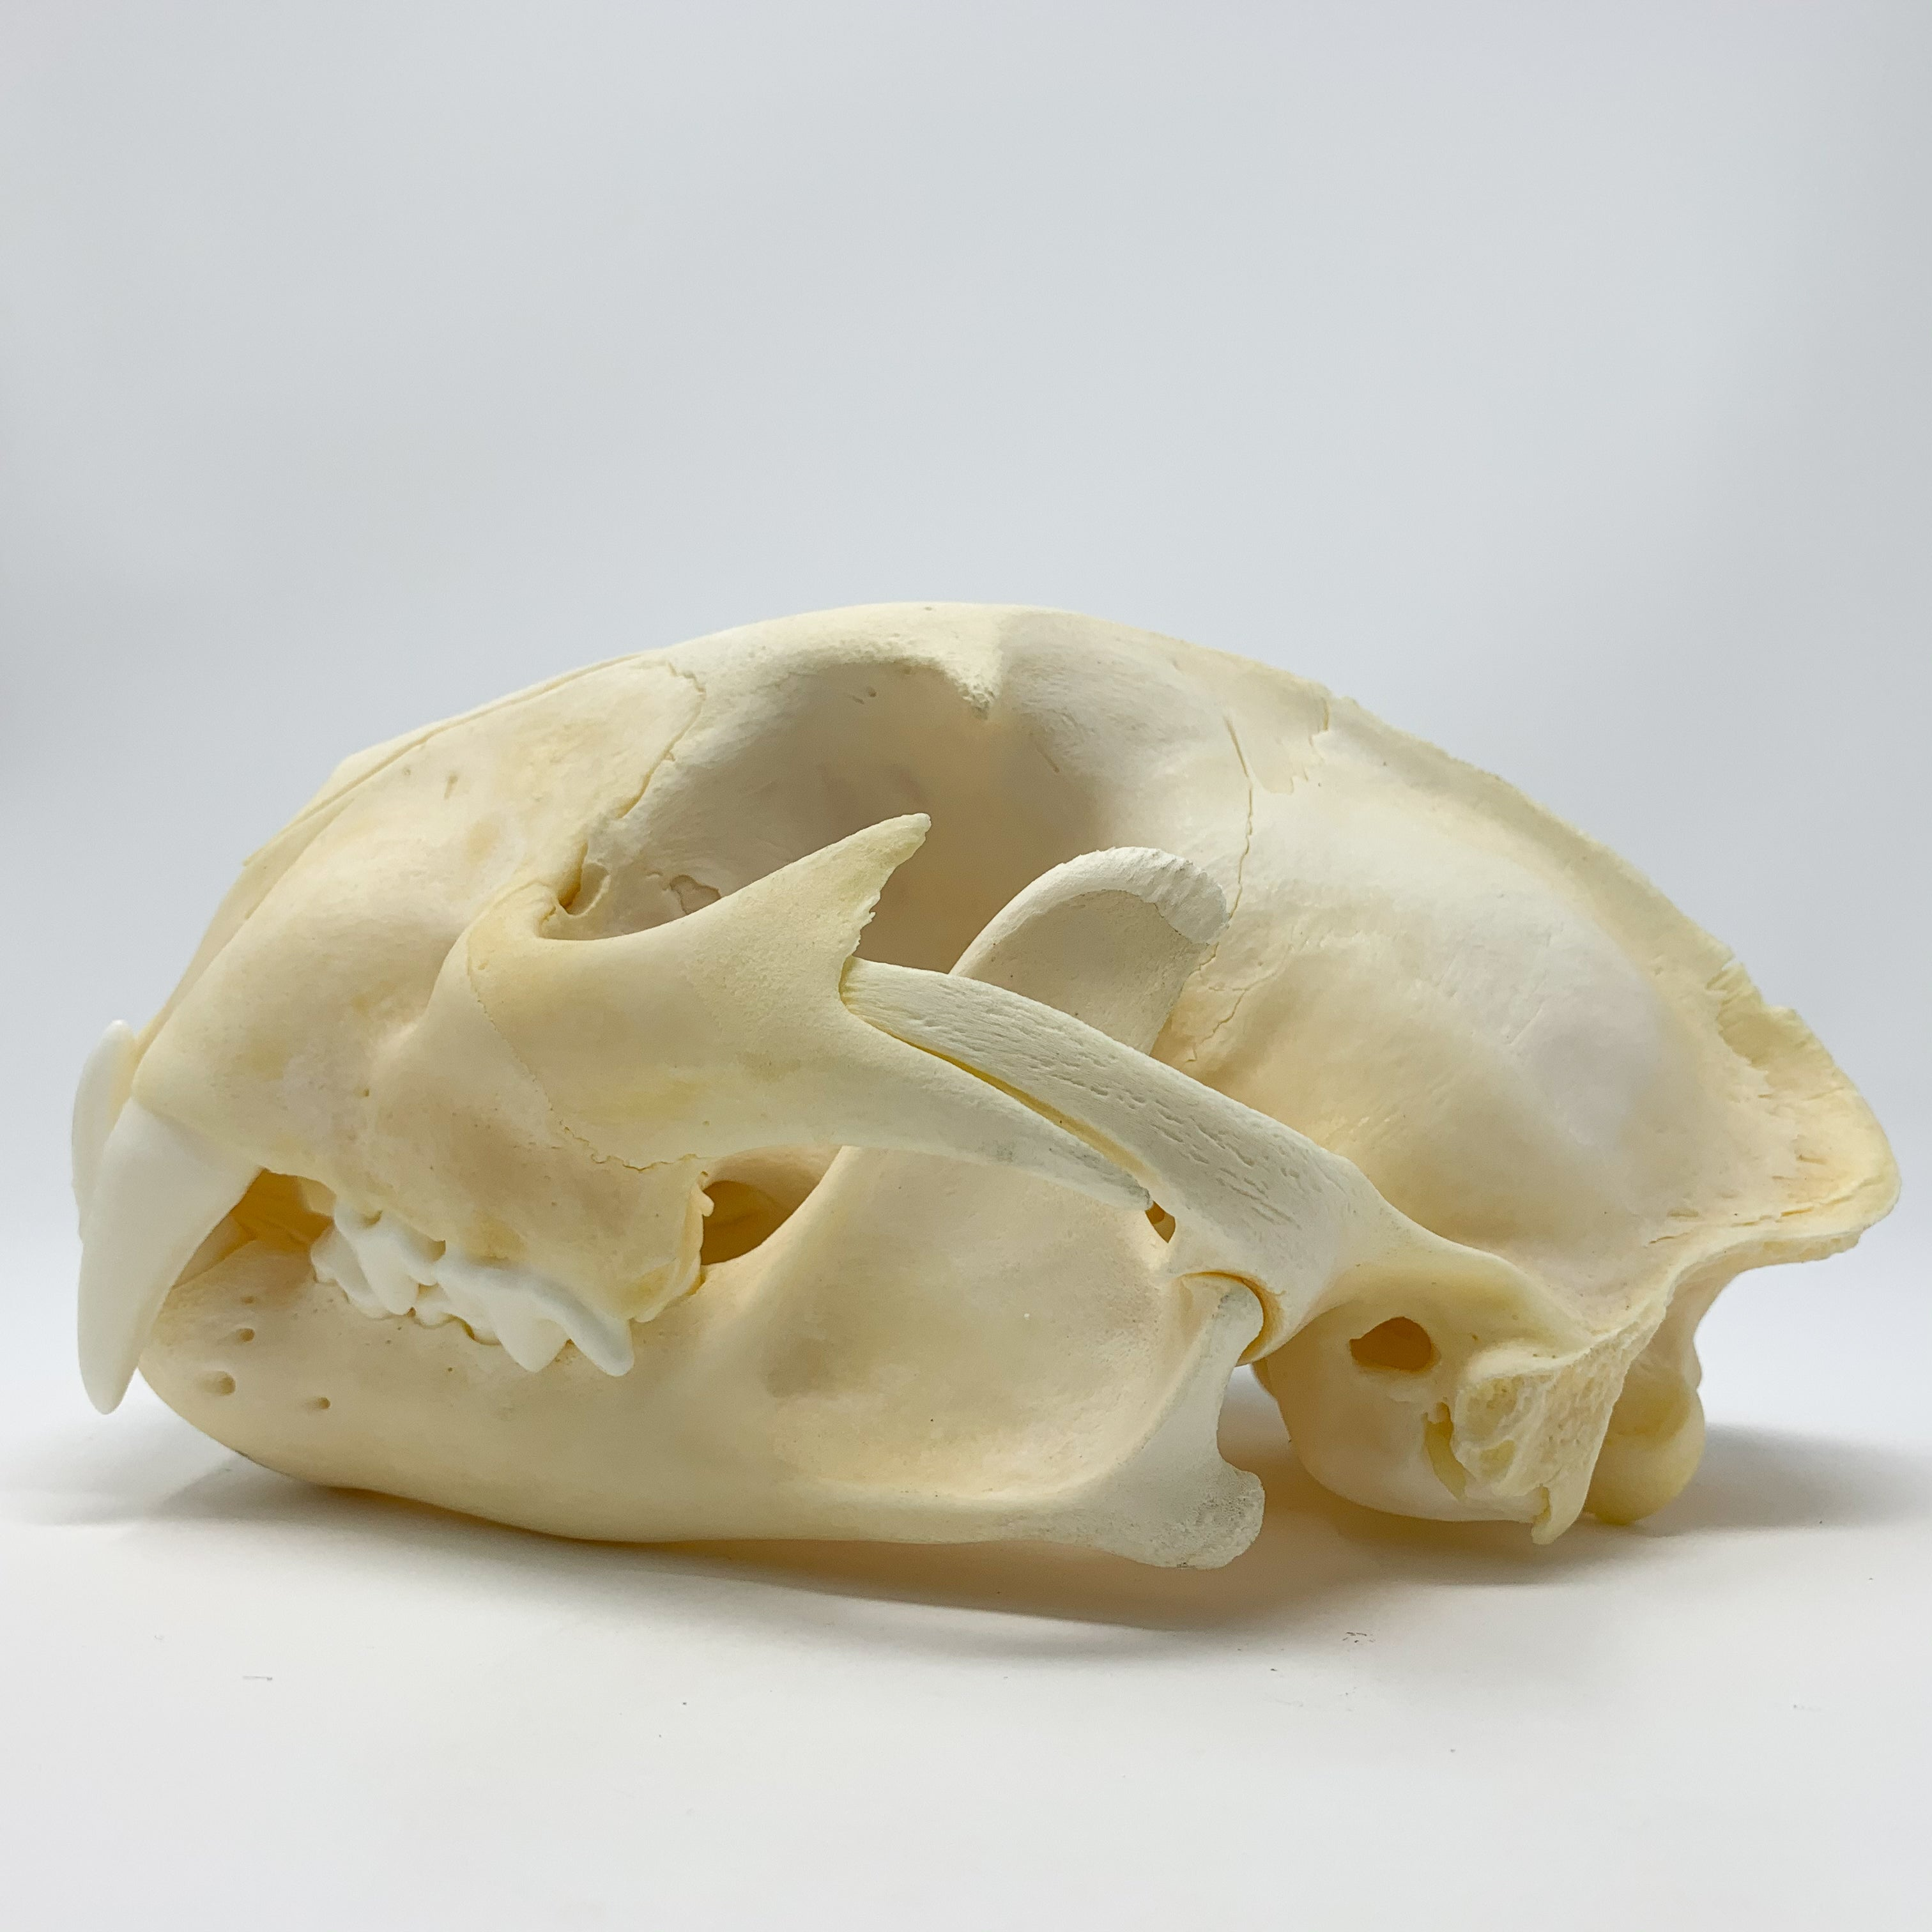 Mountain Lion Skull from Wyoming